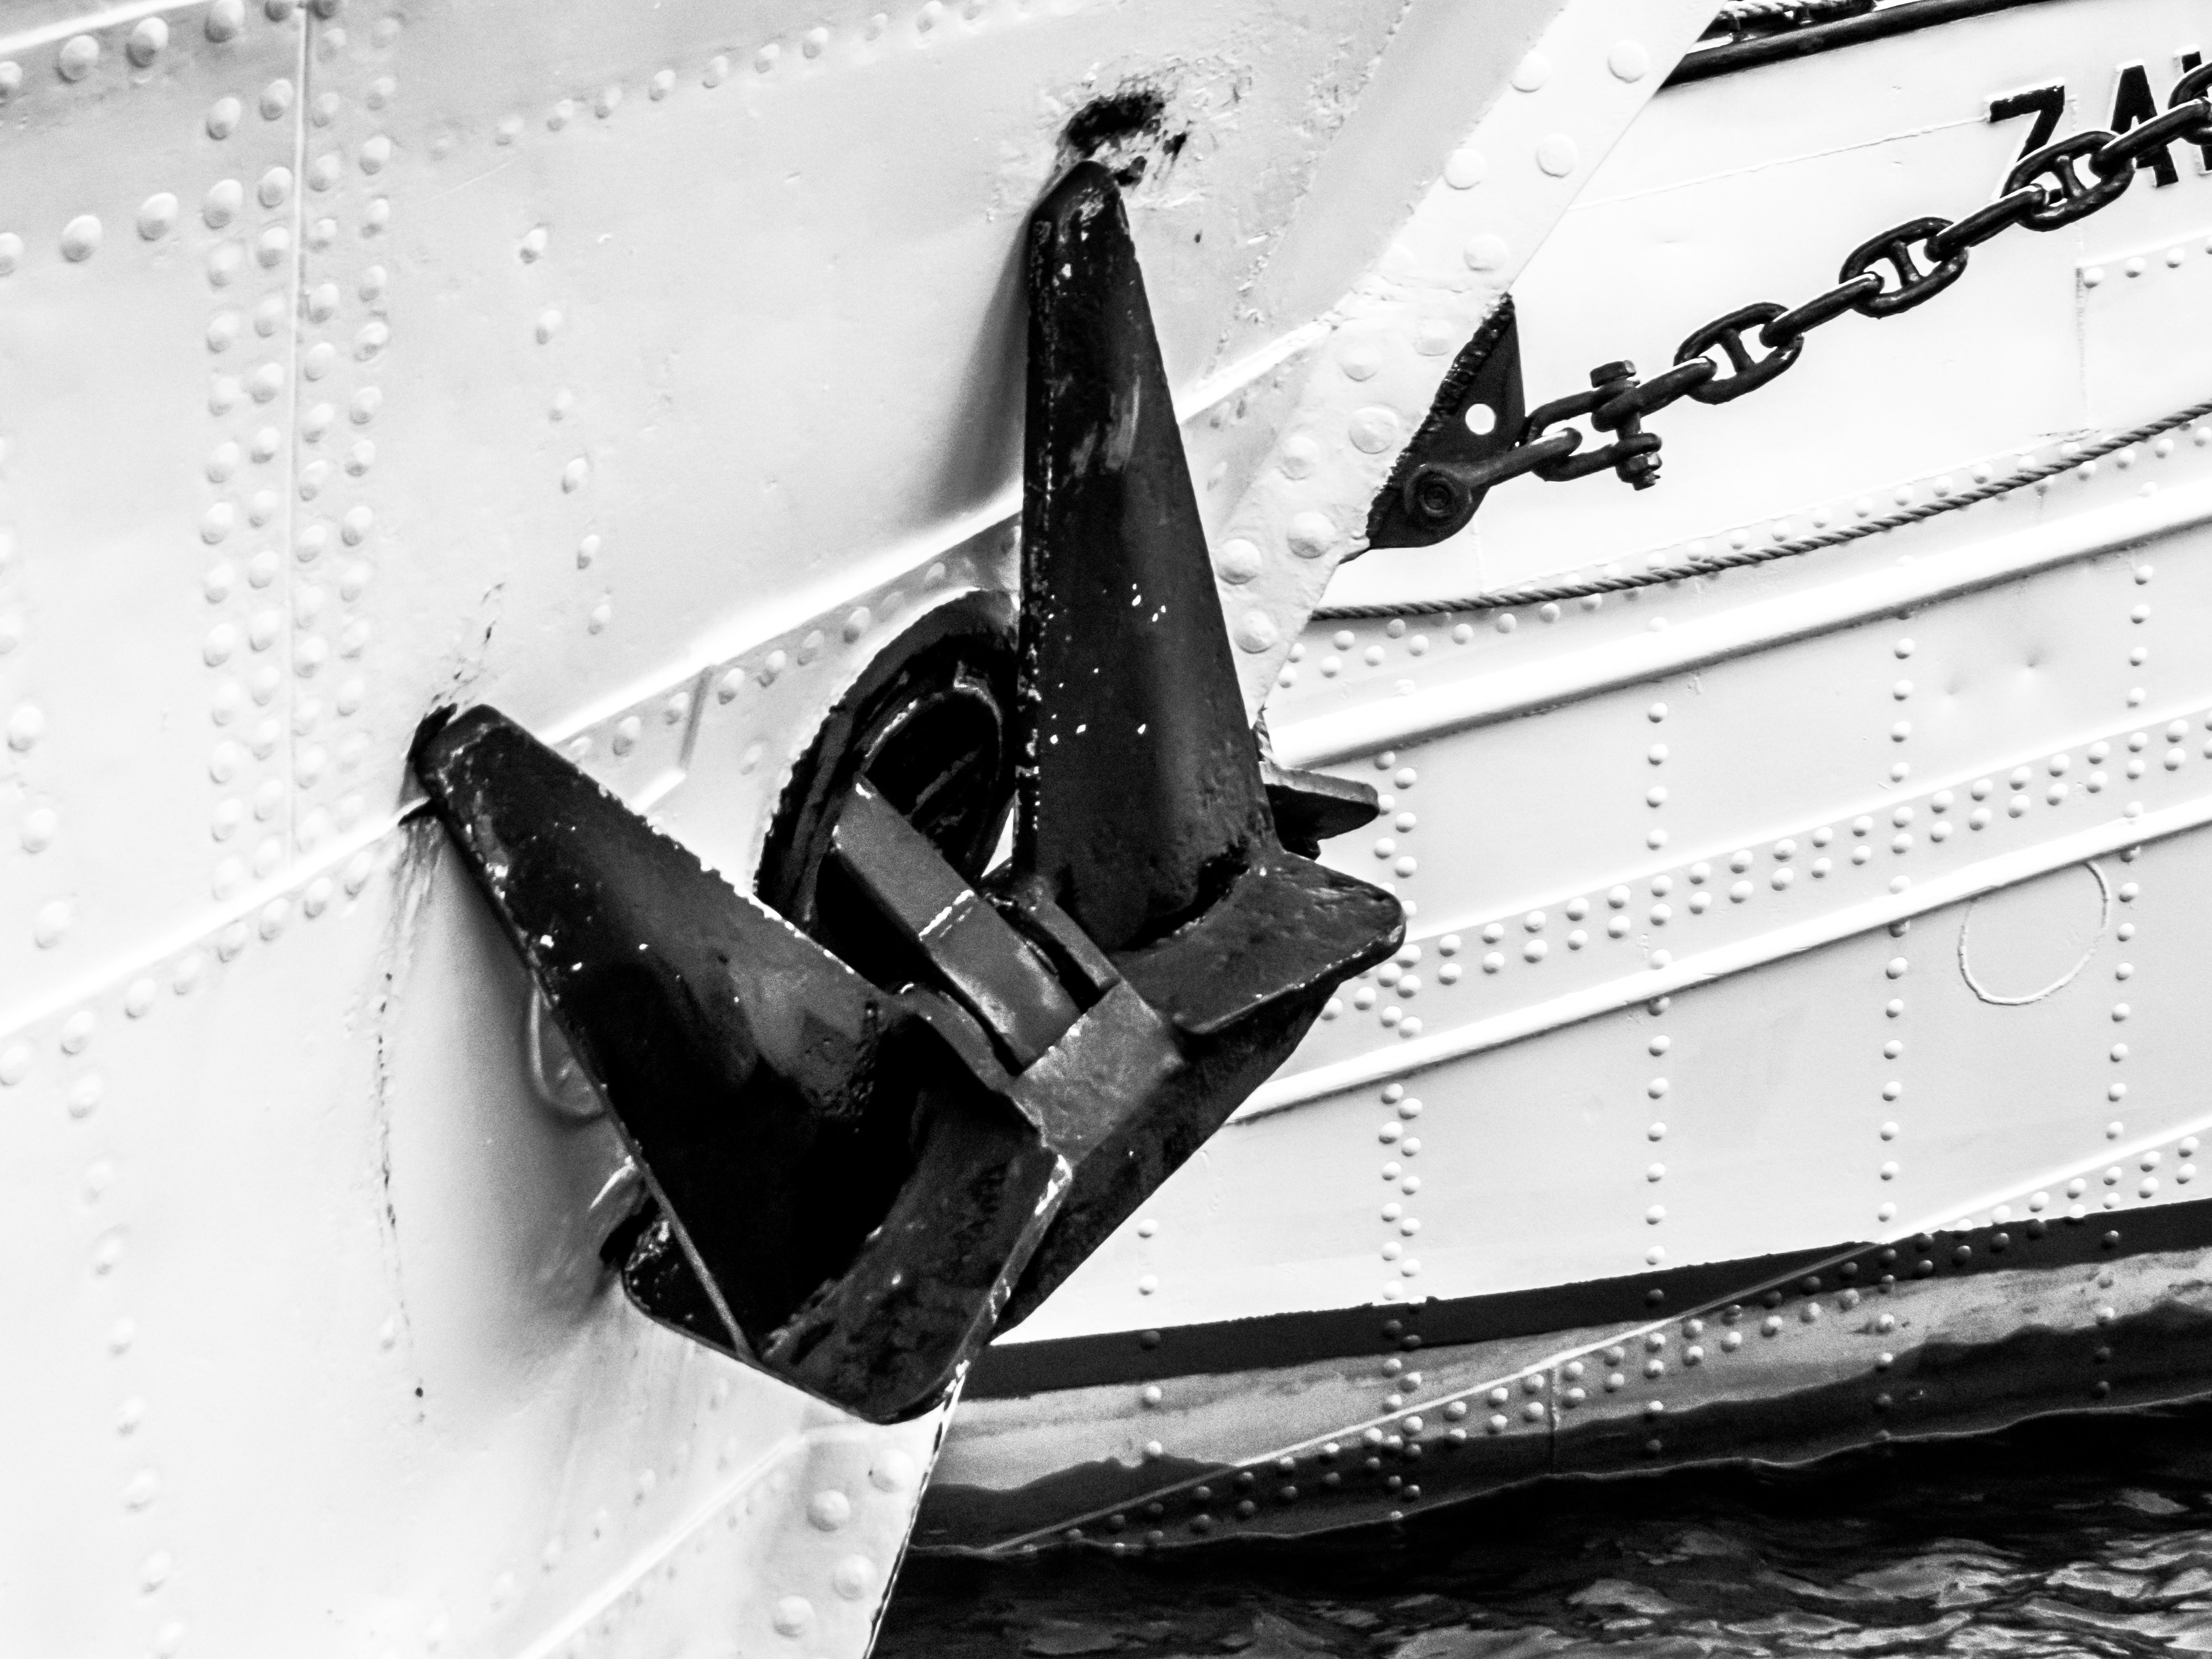 Ship's Holl type anchor, 2013, Sail, Vessel, Type, HQ Photo